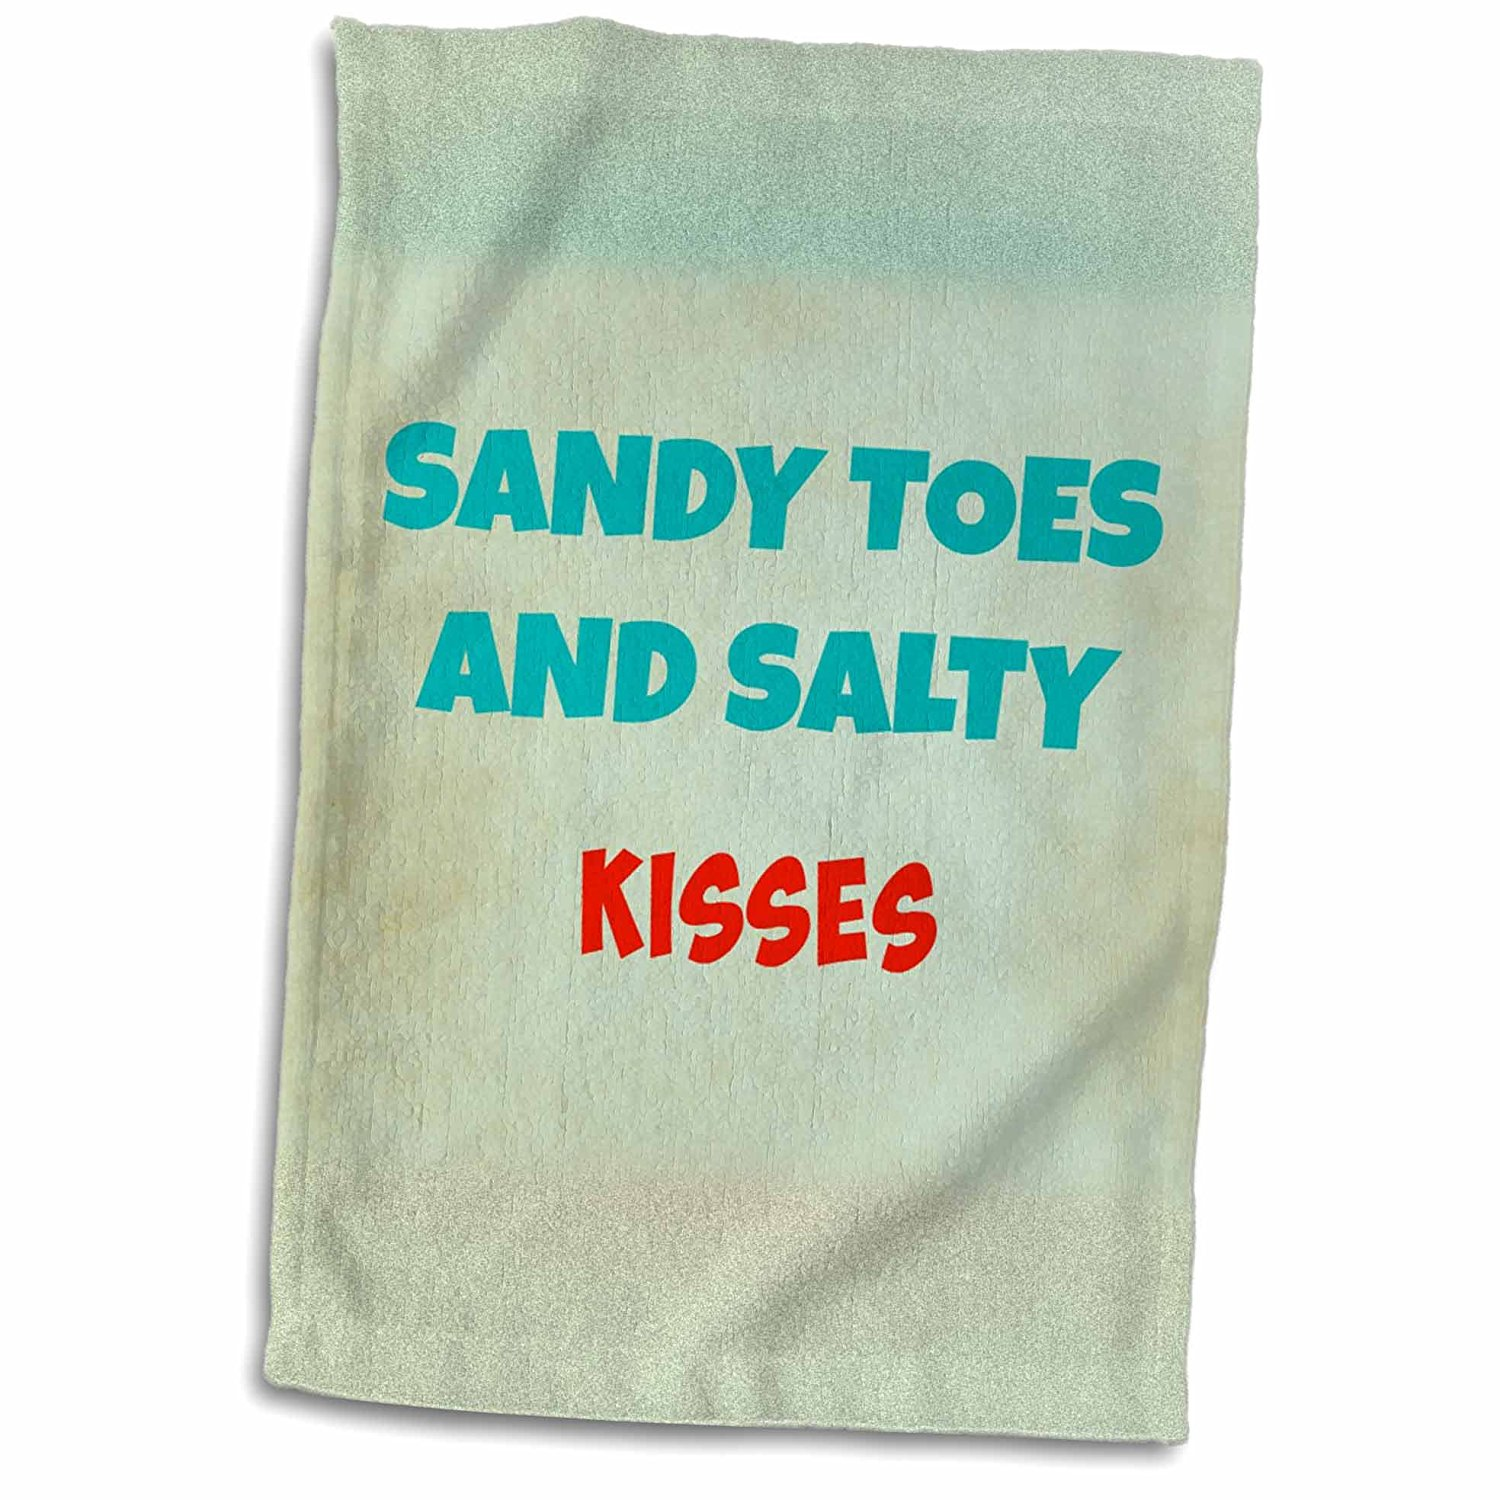 Buy RinaPiro - Funny Quotes - Sandy toes and salty kisses ...